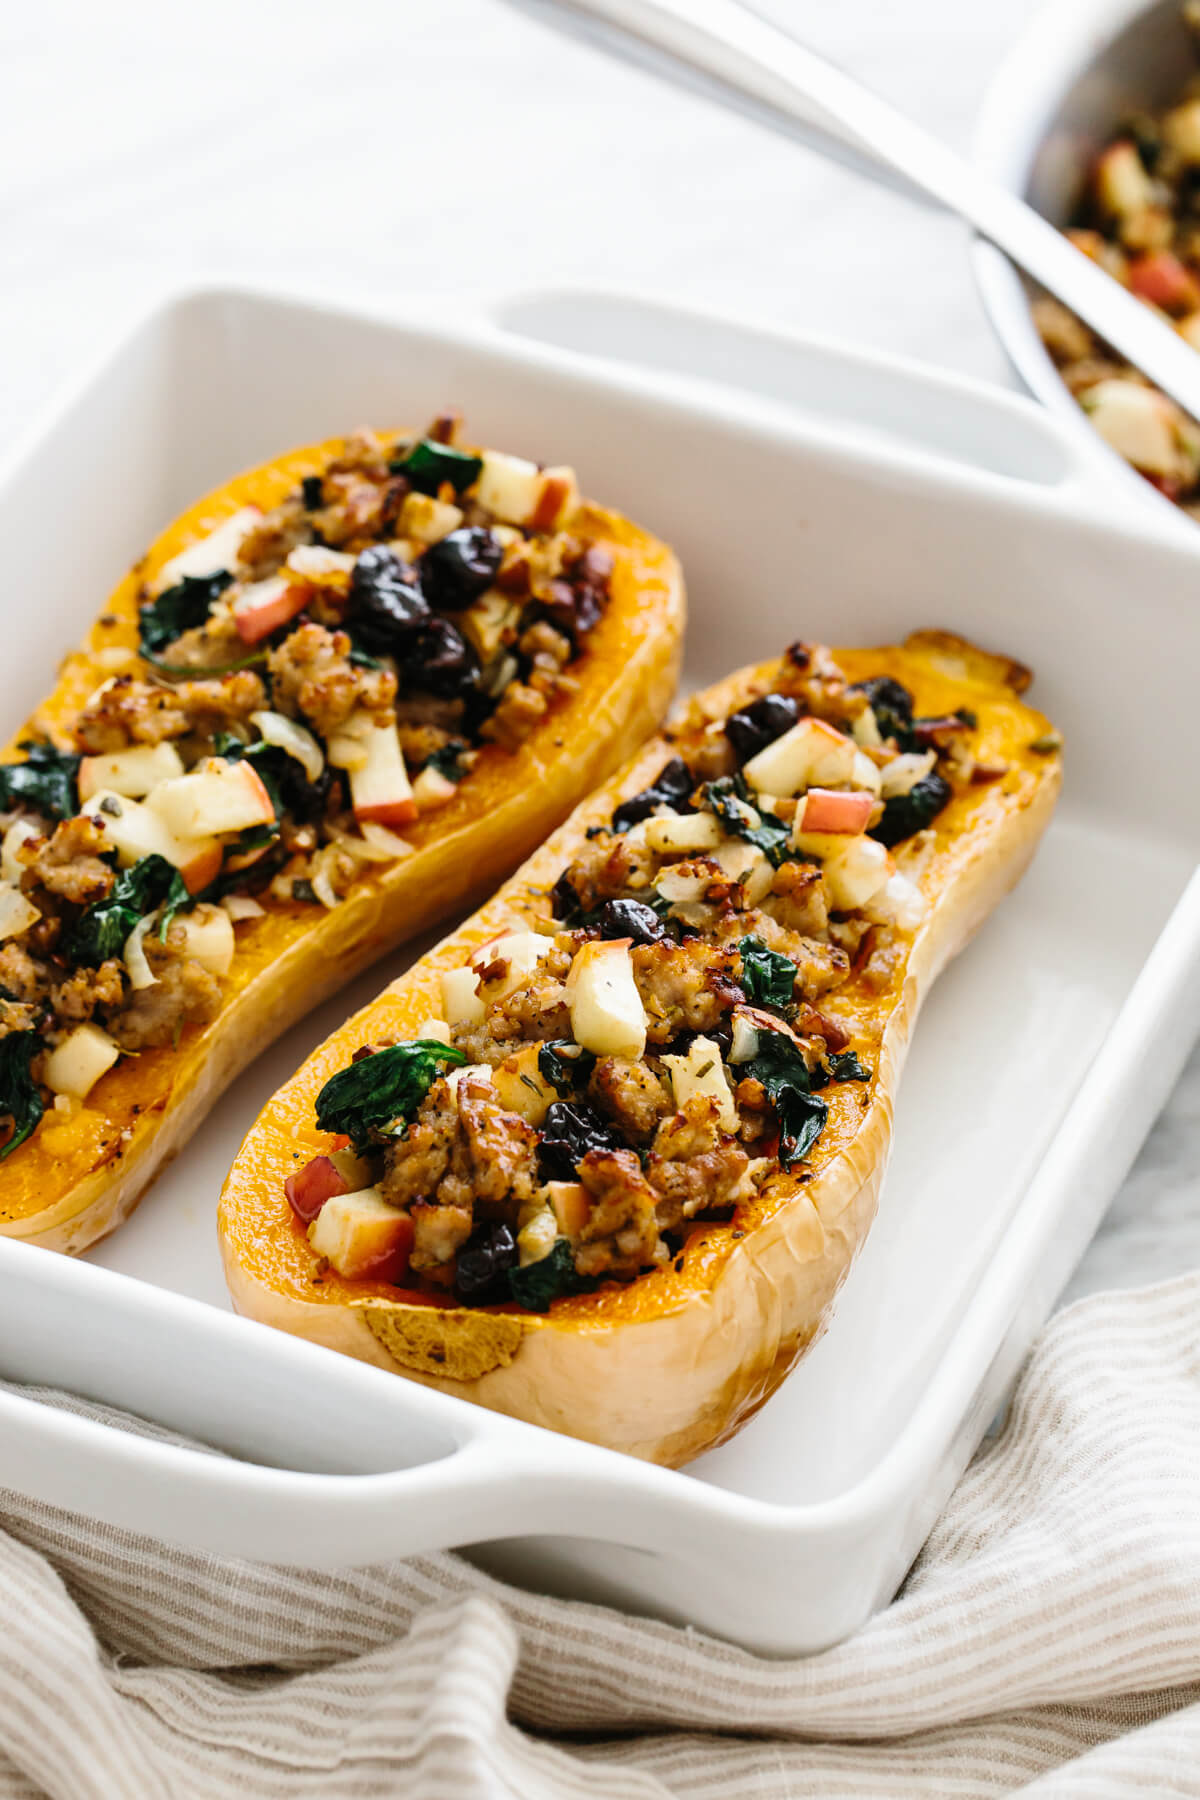 Stuffed butternut squash fresh out of the oven.